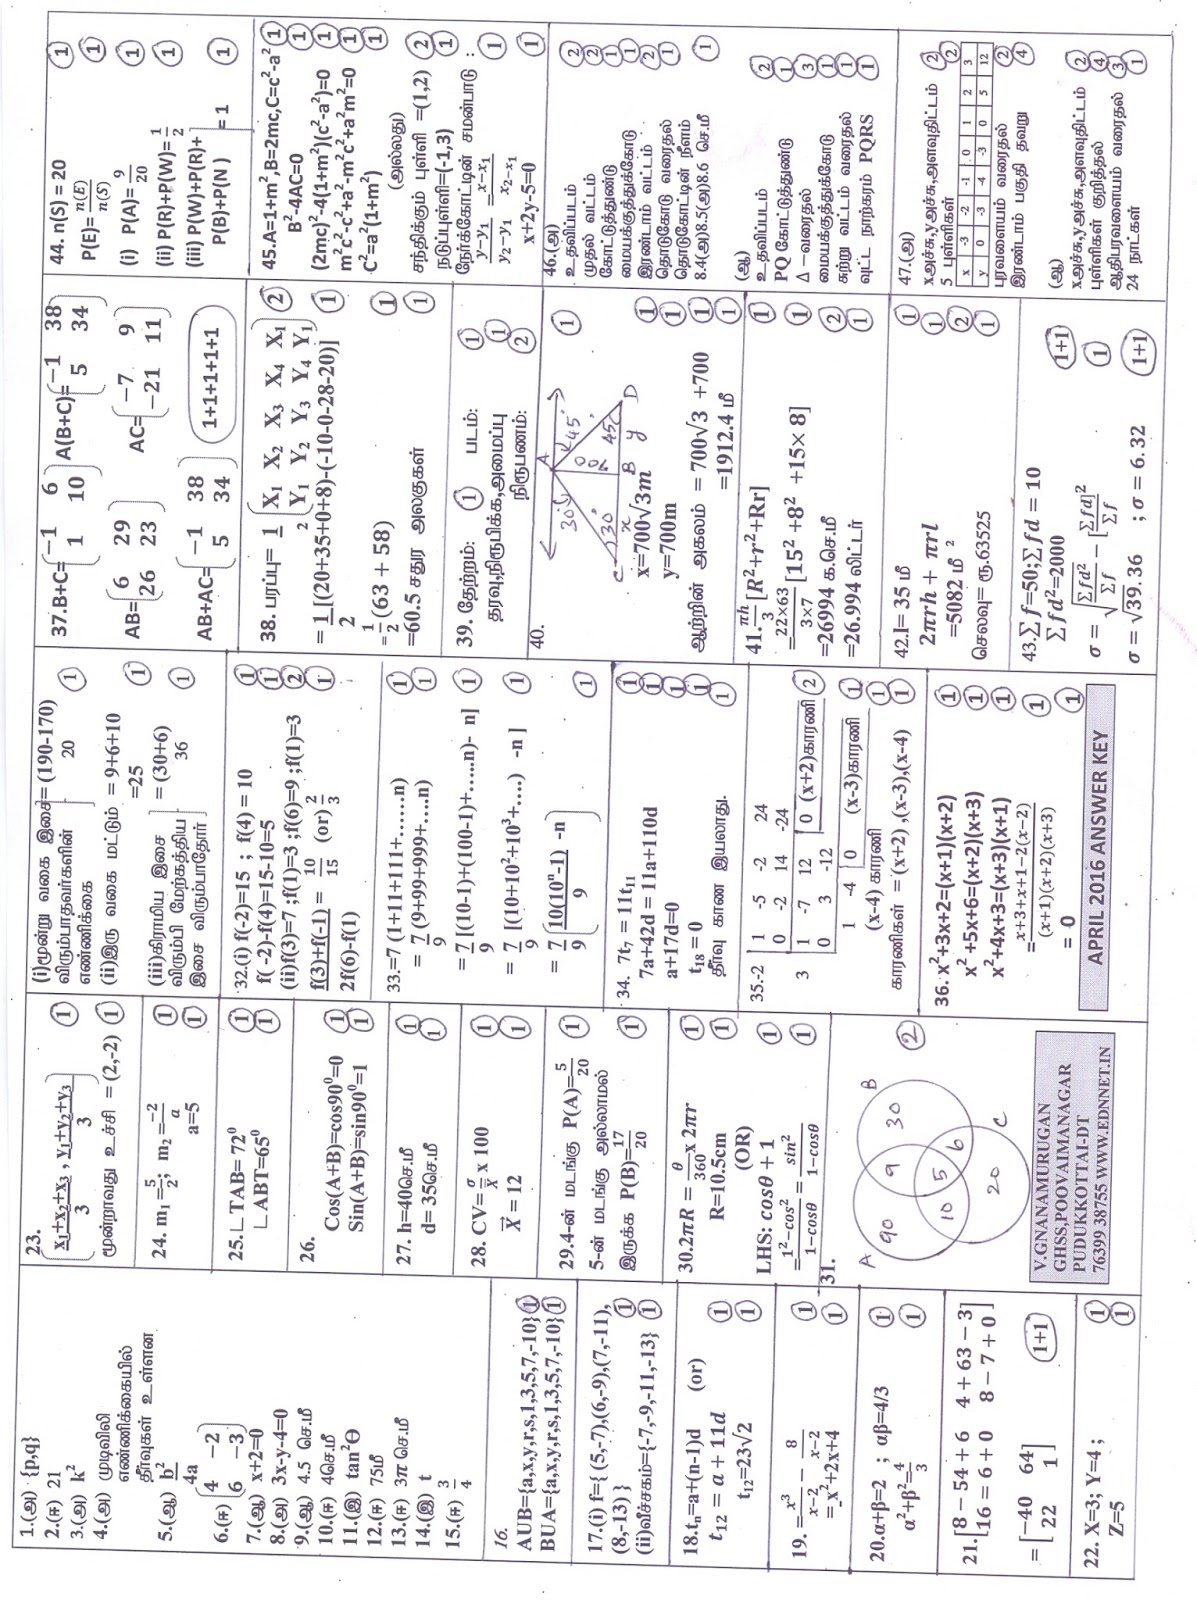 SSLC MATHS ANSWER KEY WITH MARK ALLOTMENT IN SINGLE PAGE